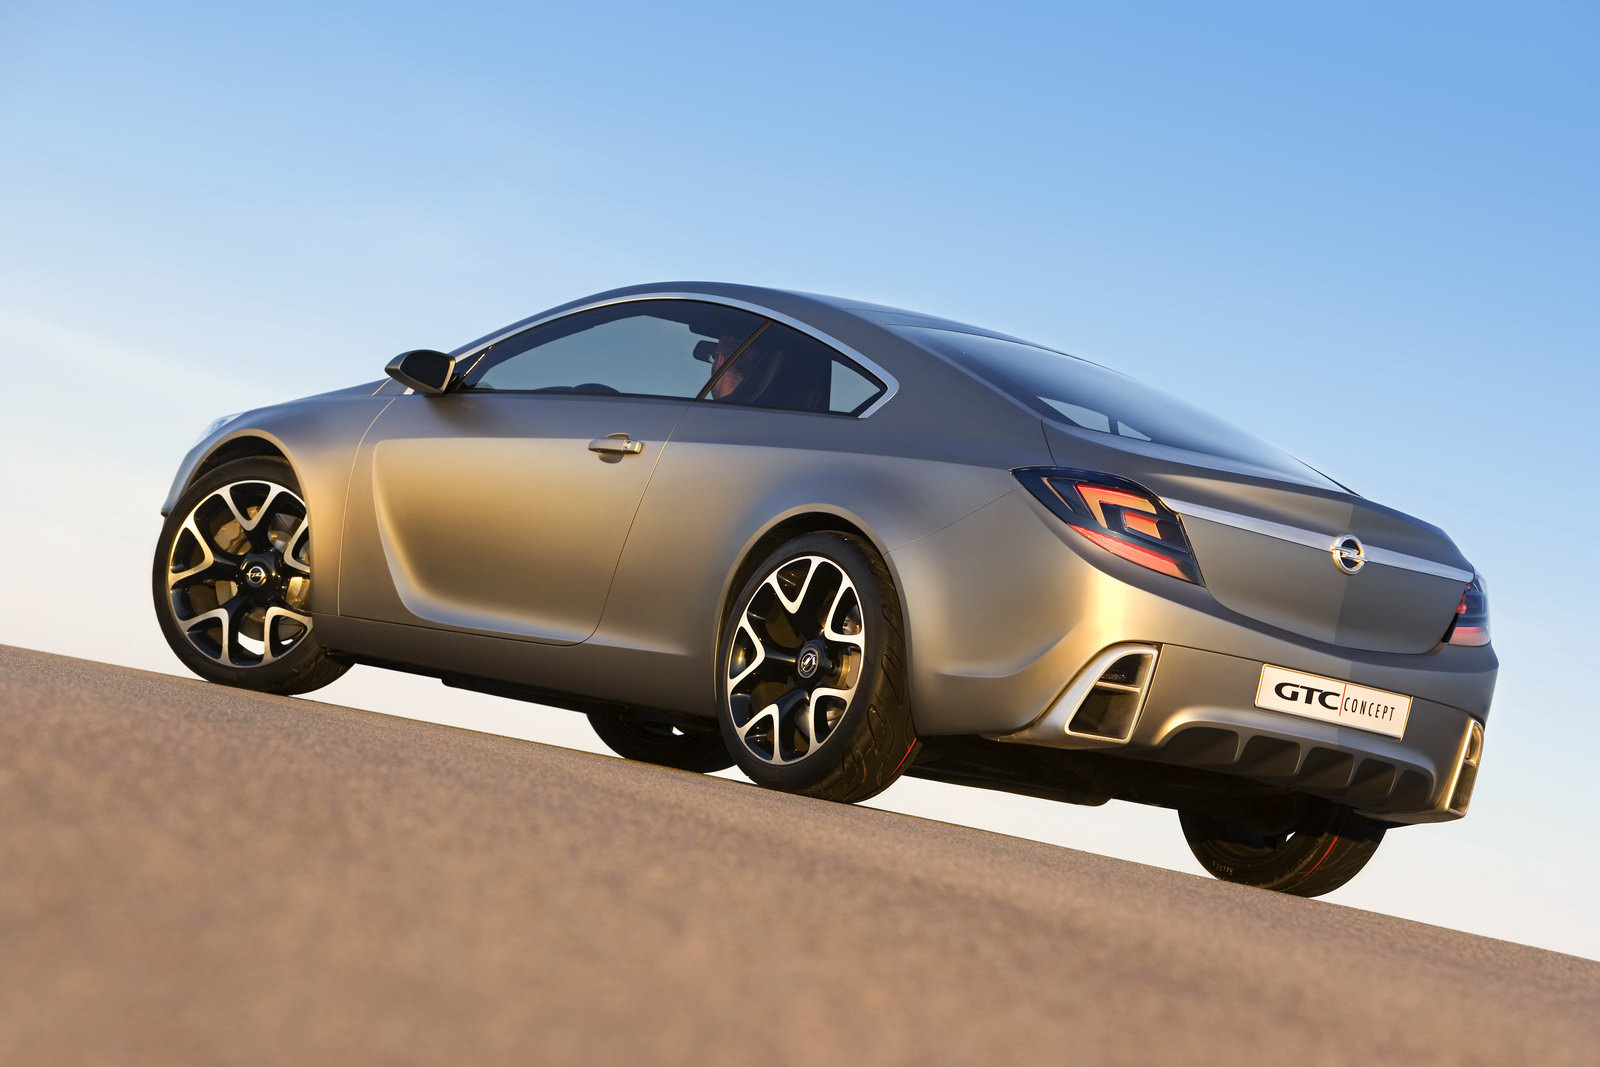 New Opel Calibra Coupe Rumored For 2017 Buick Version Could Follow Photos